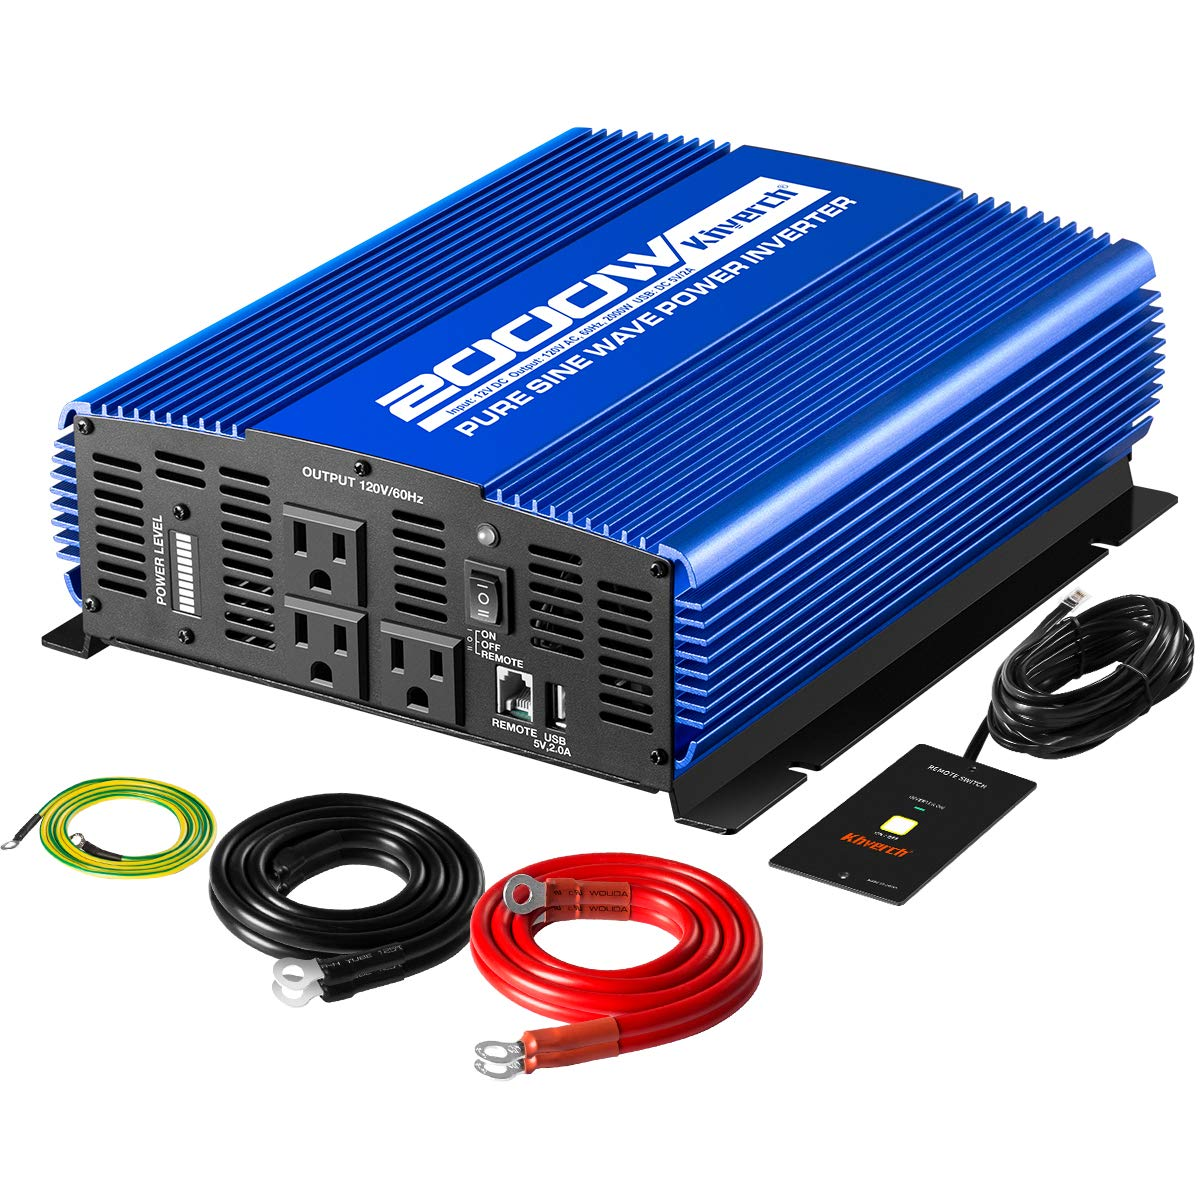 Kinverch 2000W Pure Sine Wave Power Inverter Converts 12V DC to 110V AC with USB Port and Remote Control by kinverch